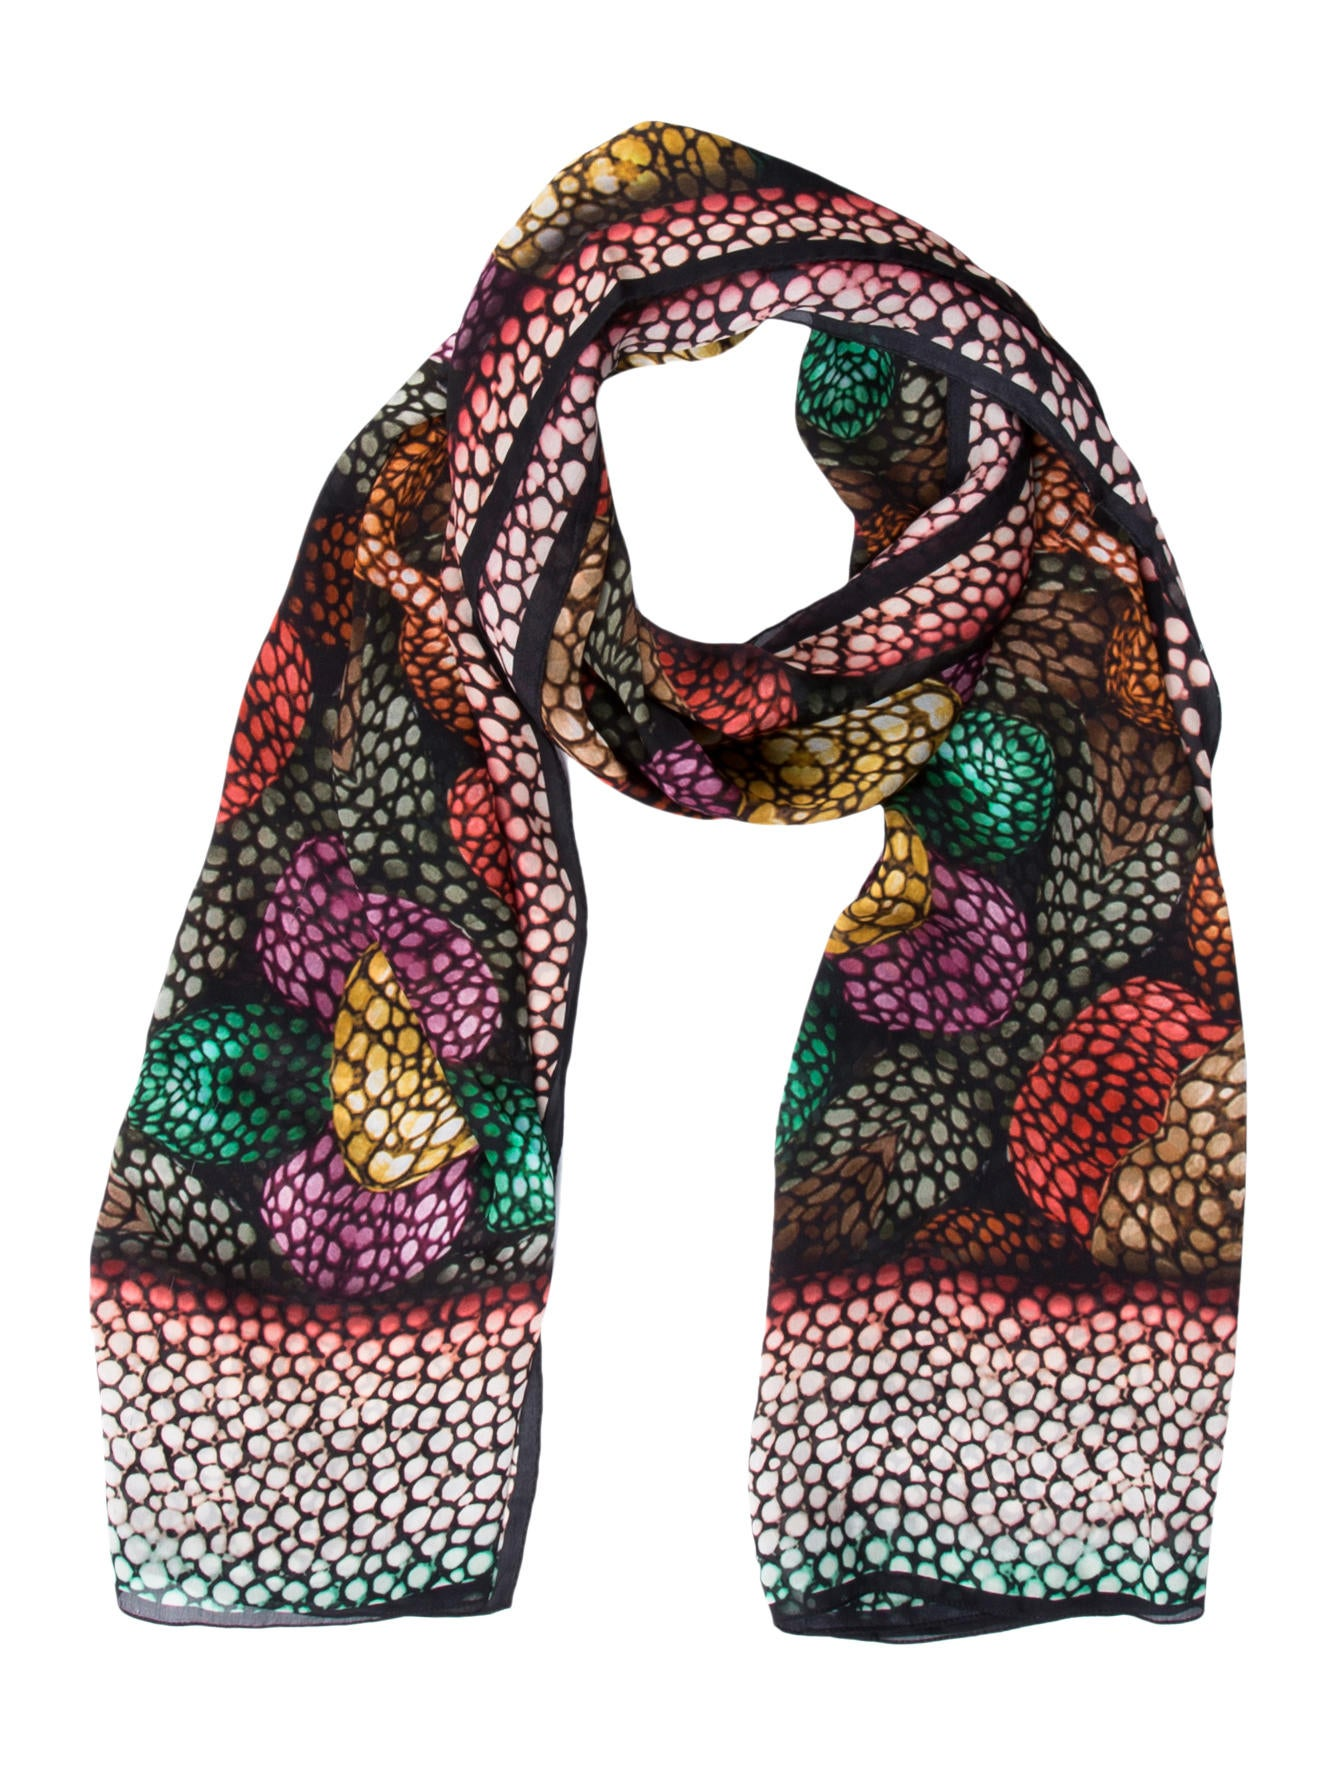 Slinky Brand Printed Chiffon Scarf For quick and easy solutions to your everyday fashion needs, look no further than Slinky. Enjoy a variety of stylish dresses and coordinates that mix and match to create incredible ensembles that are comfortable, easy-to-wear and perfect for any occasion/5(10).